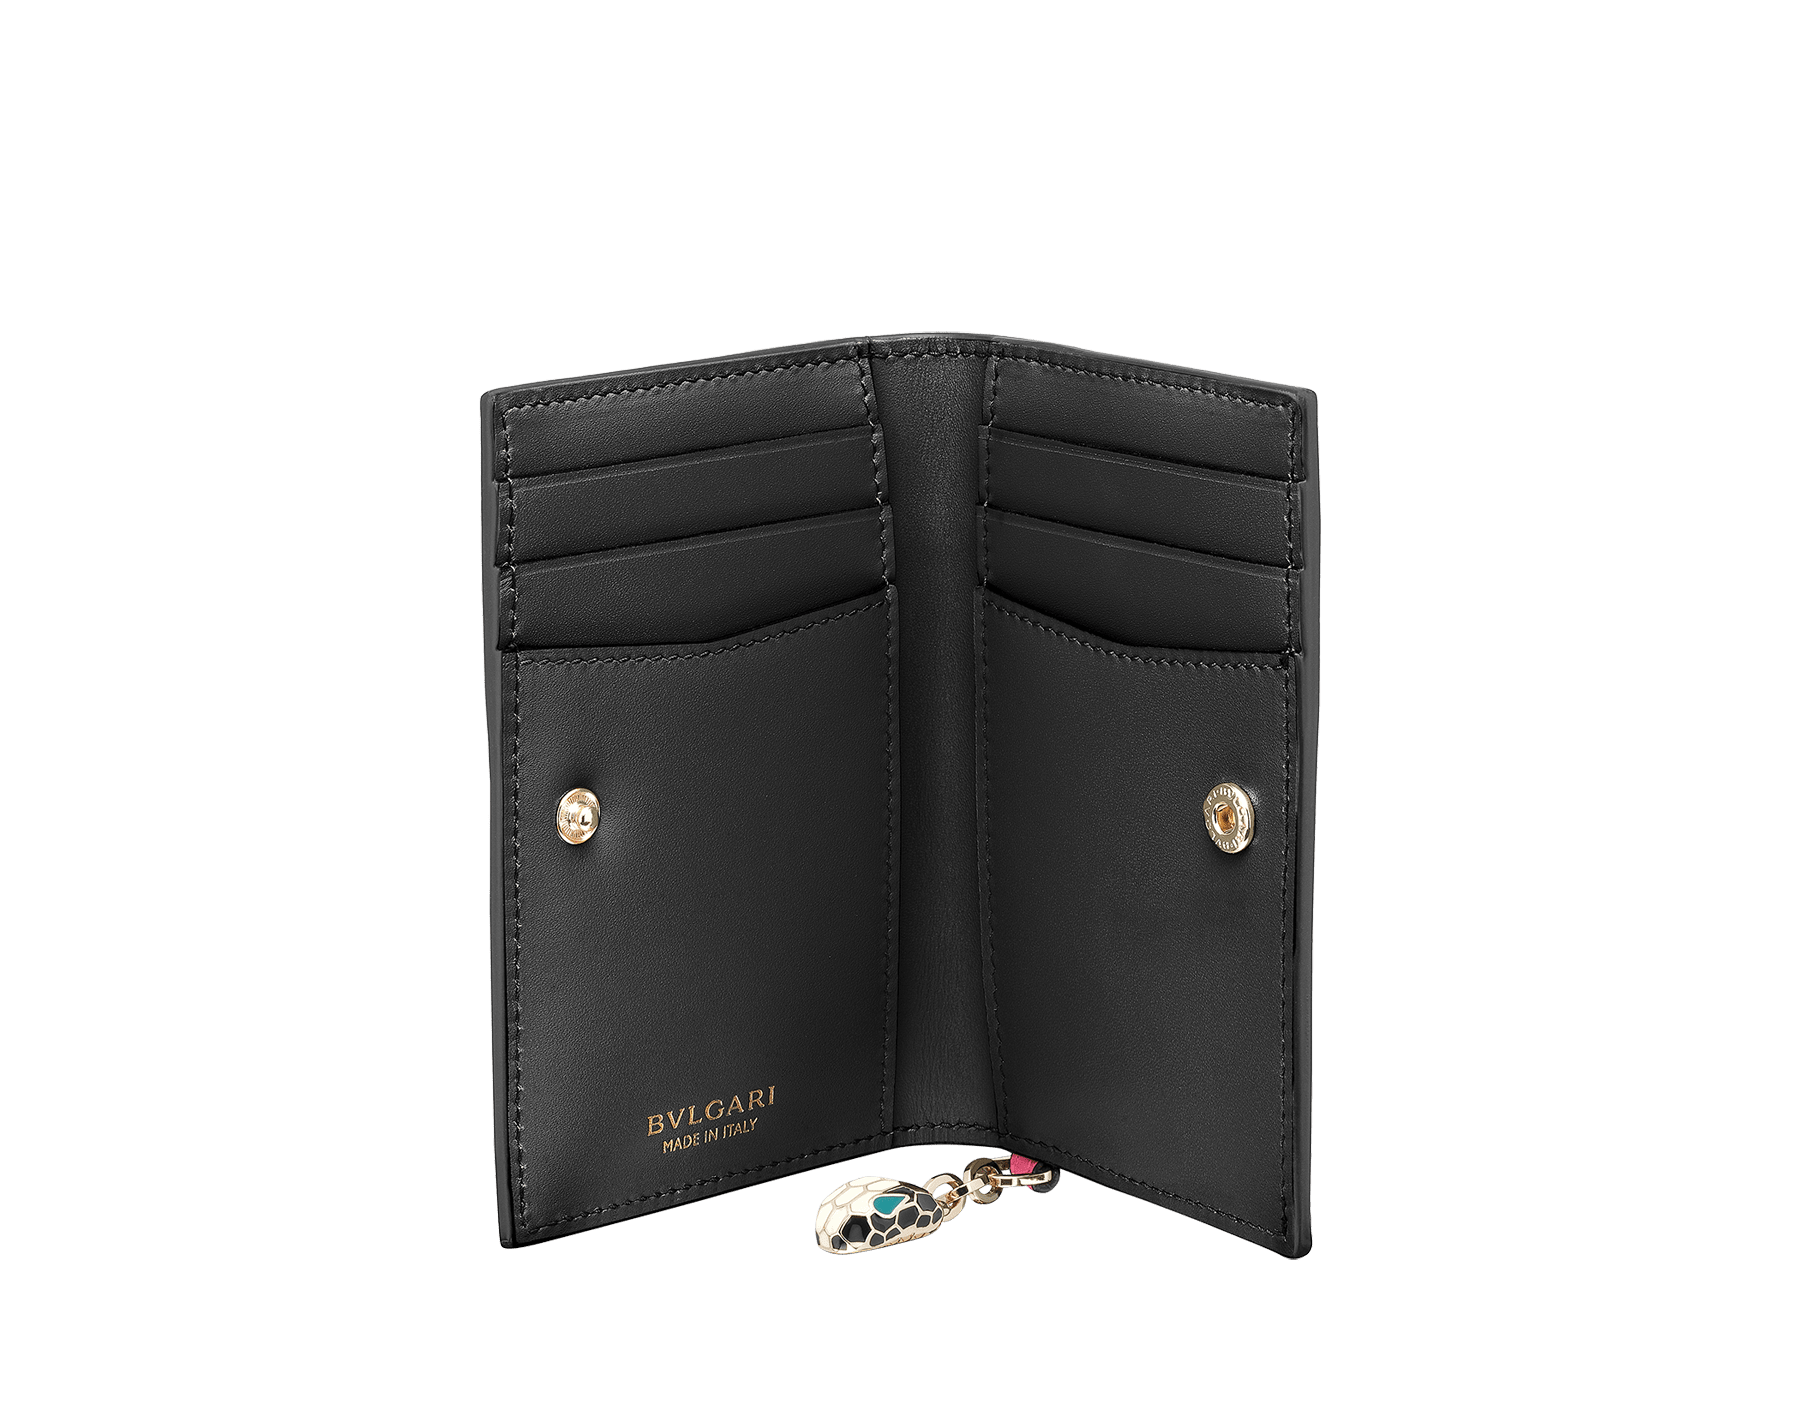 Folded credit card holder in black and jasper flame calf leather, with brass light gold plated hardware and stud closure. Heart-shaped charm in black and jasper flame enamel. SEA-CC-HOLDER-FOLD-CLc image 2